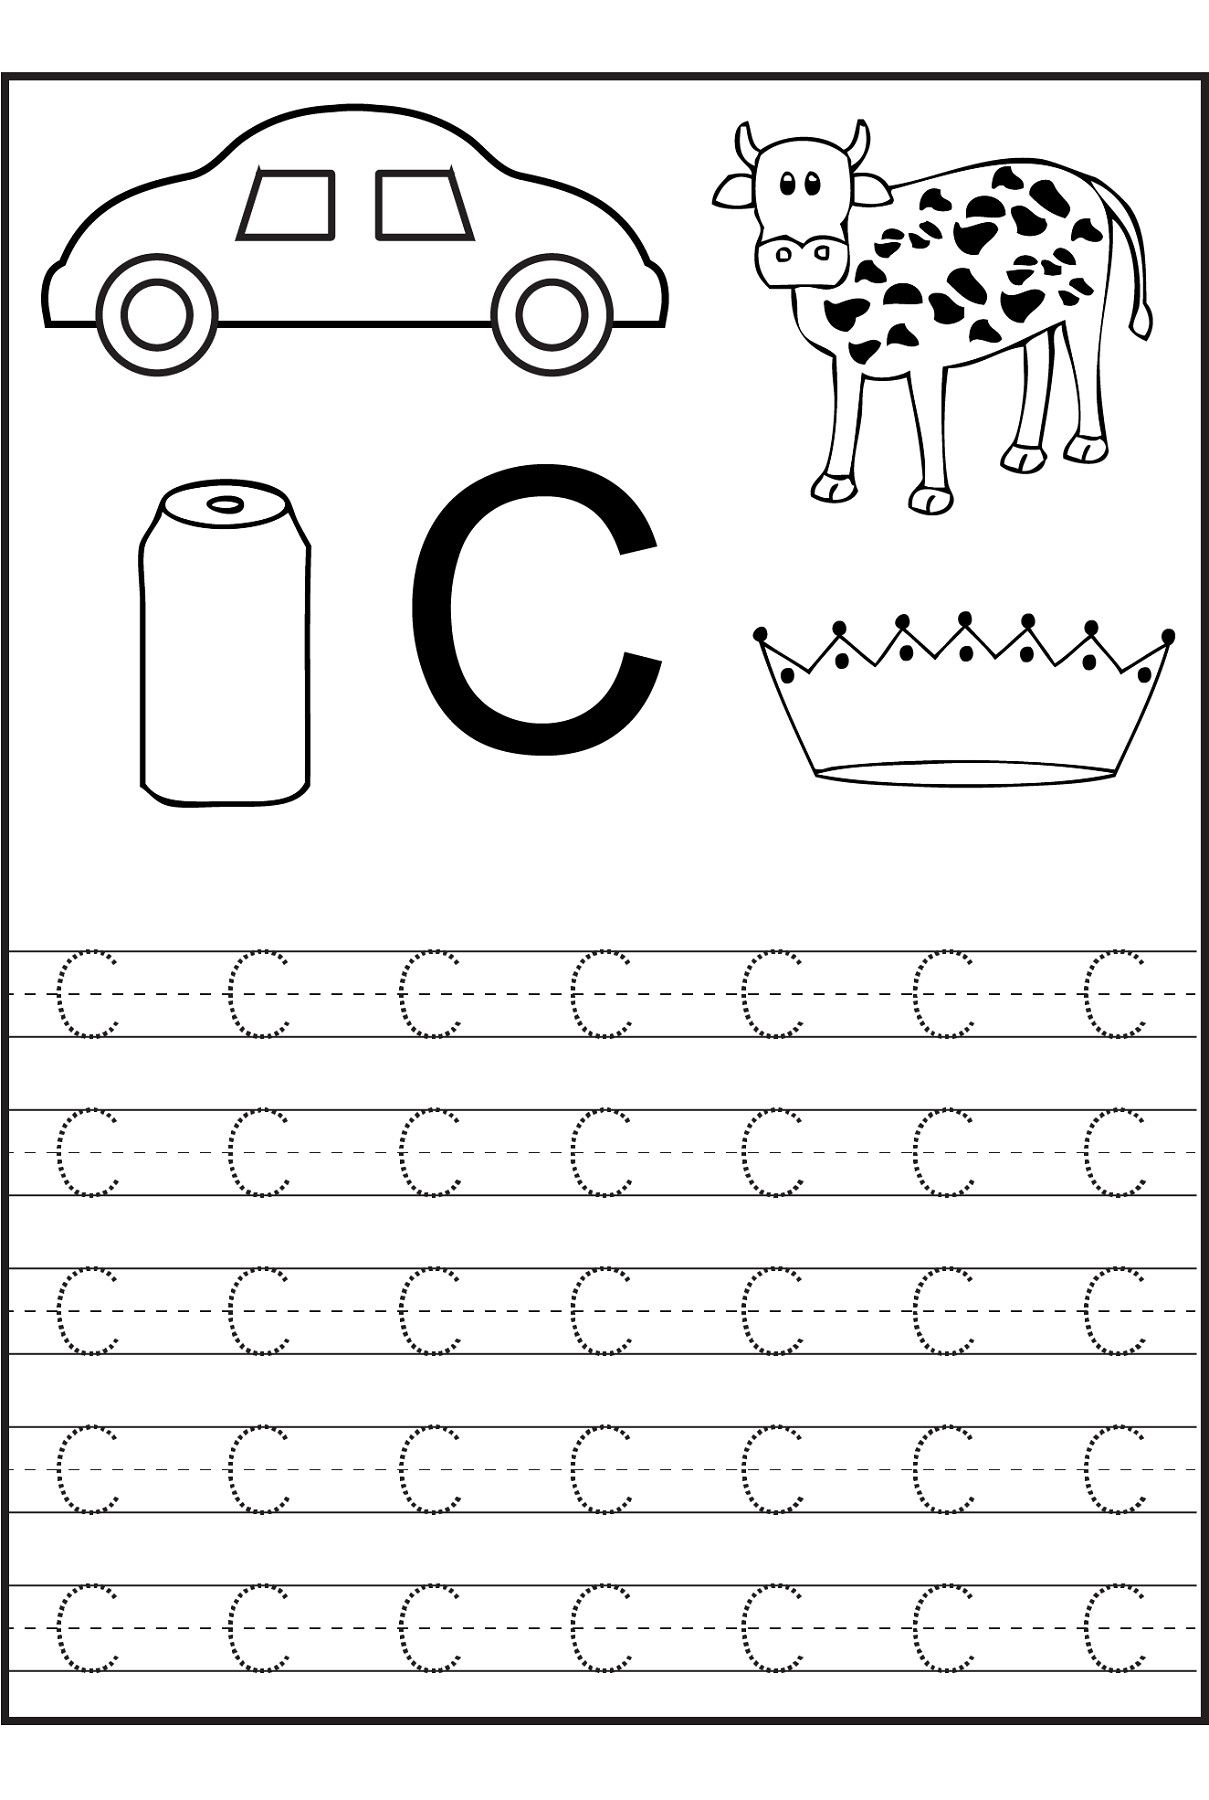 4 Alphabet Worksheets Videos Activities Trace The Letter C Worksheets In 2020 Learning Worksheets Free Preschool Worksheets Letter C Worksheets